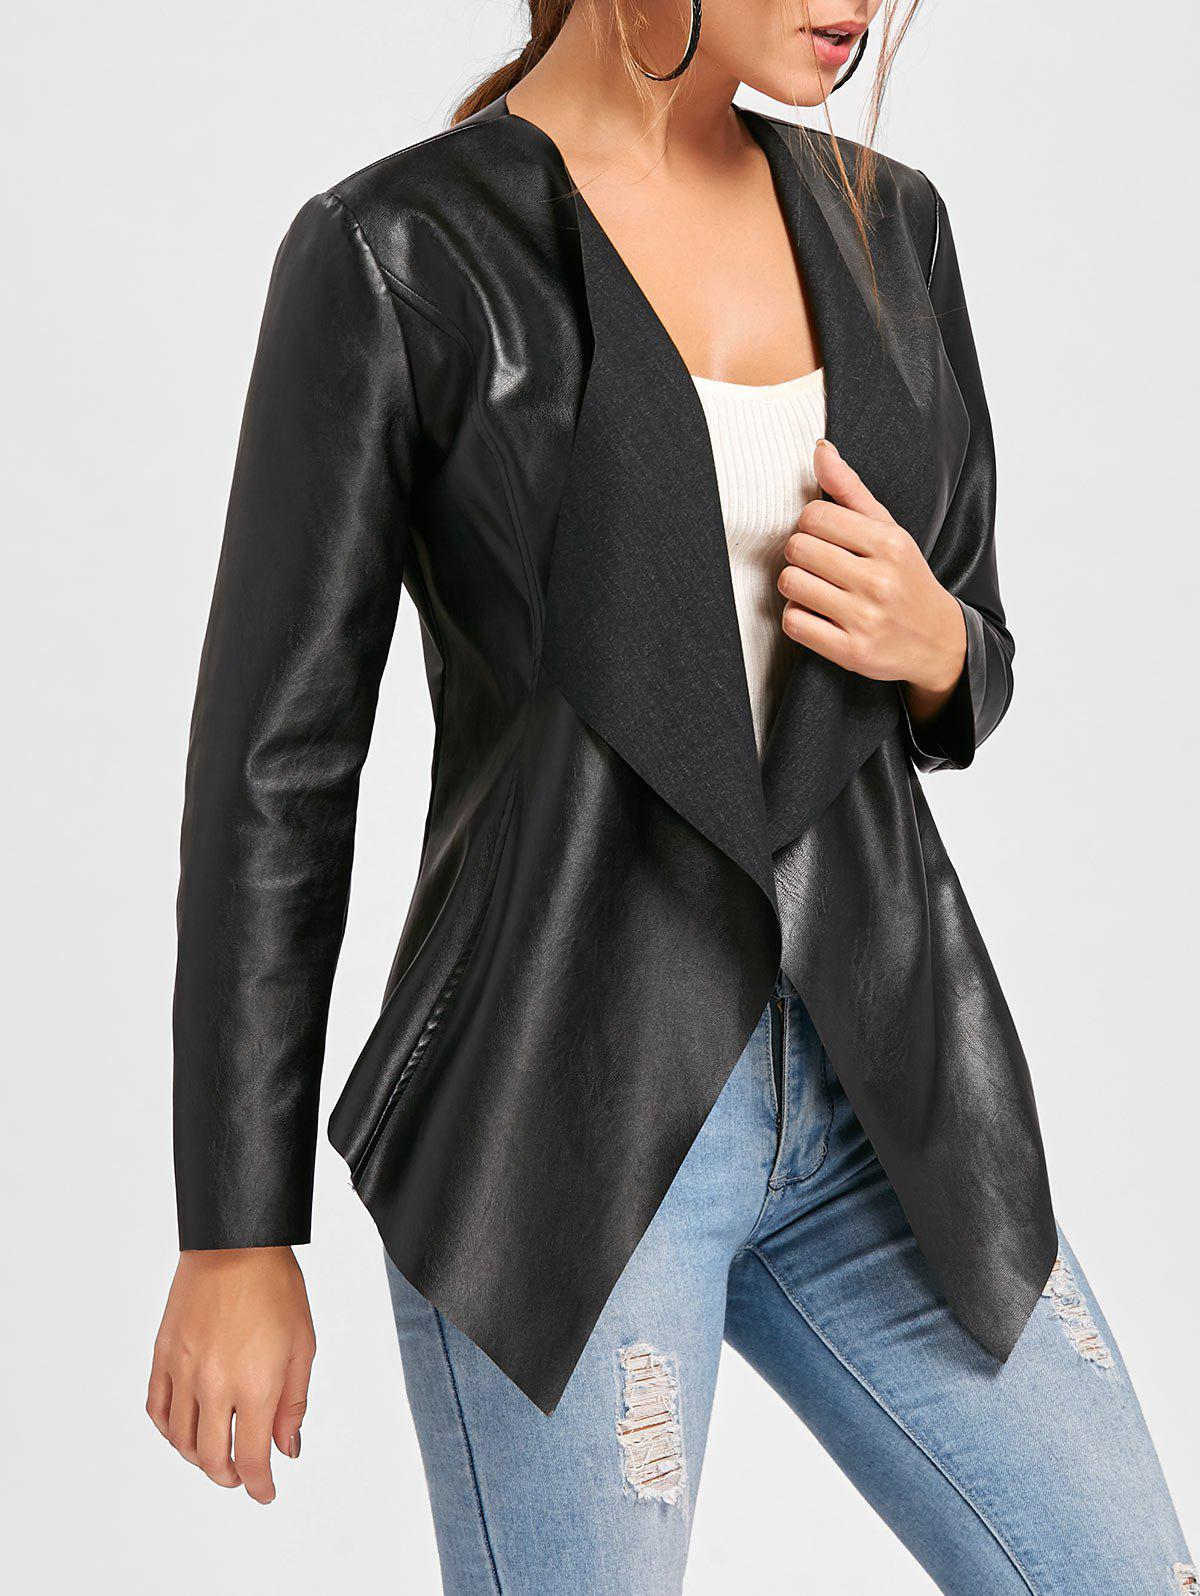 Buy Oasis Women's Black Leather Waterfall Jacket. Similar products also available. SALE now on!